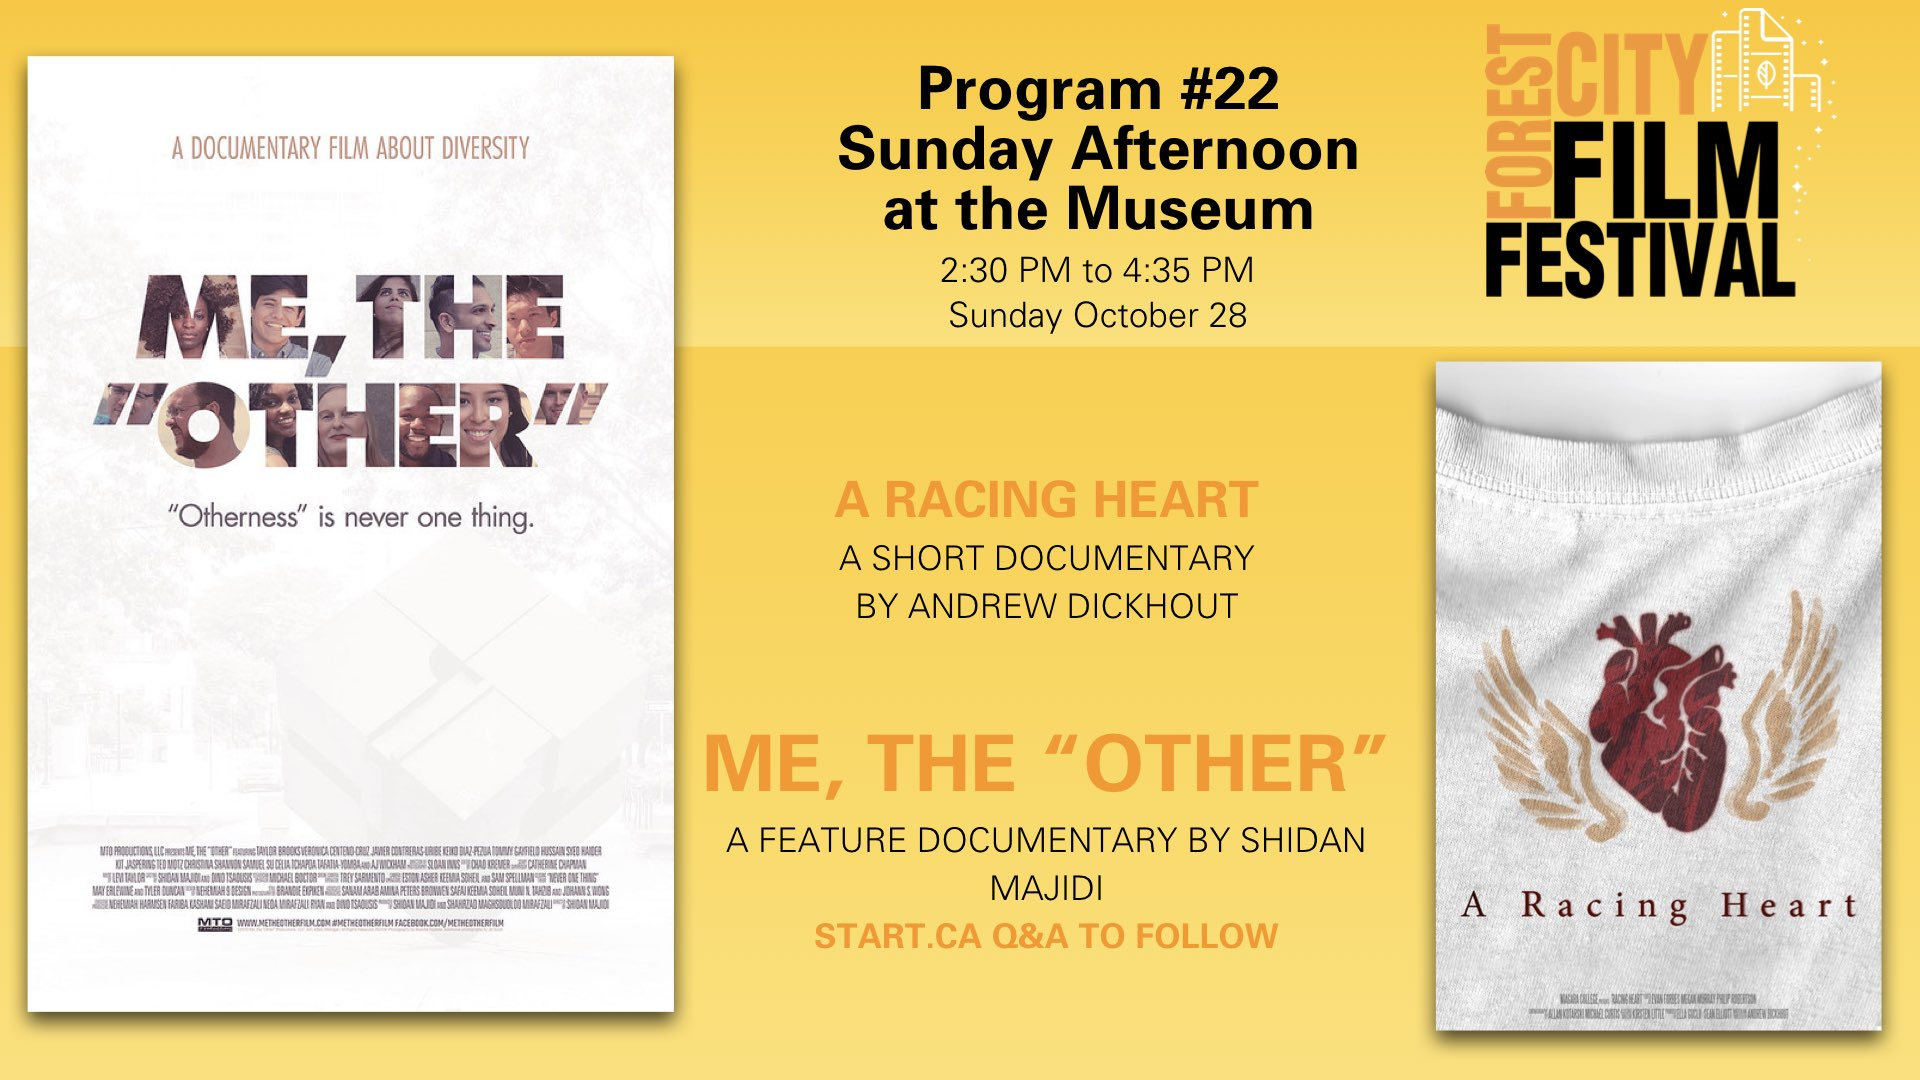 Forest City Film Festival 2018 - Sunday afternoon at the Museum Program #22